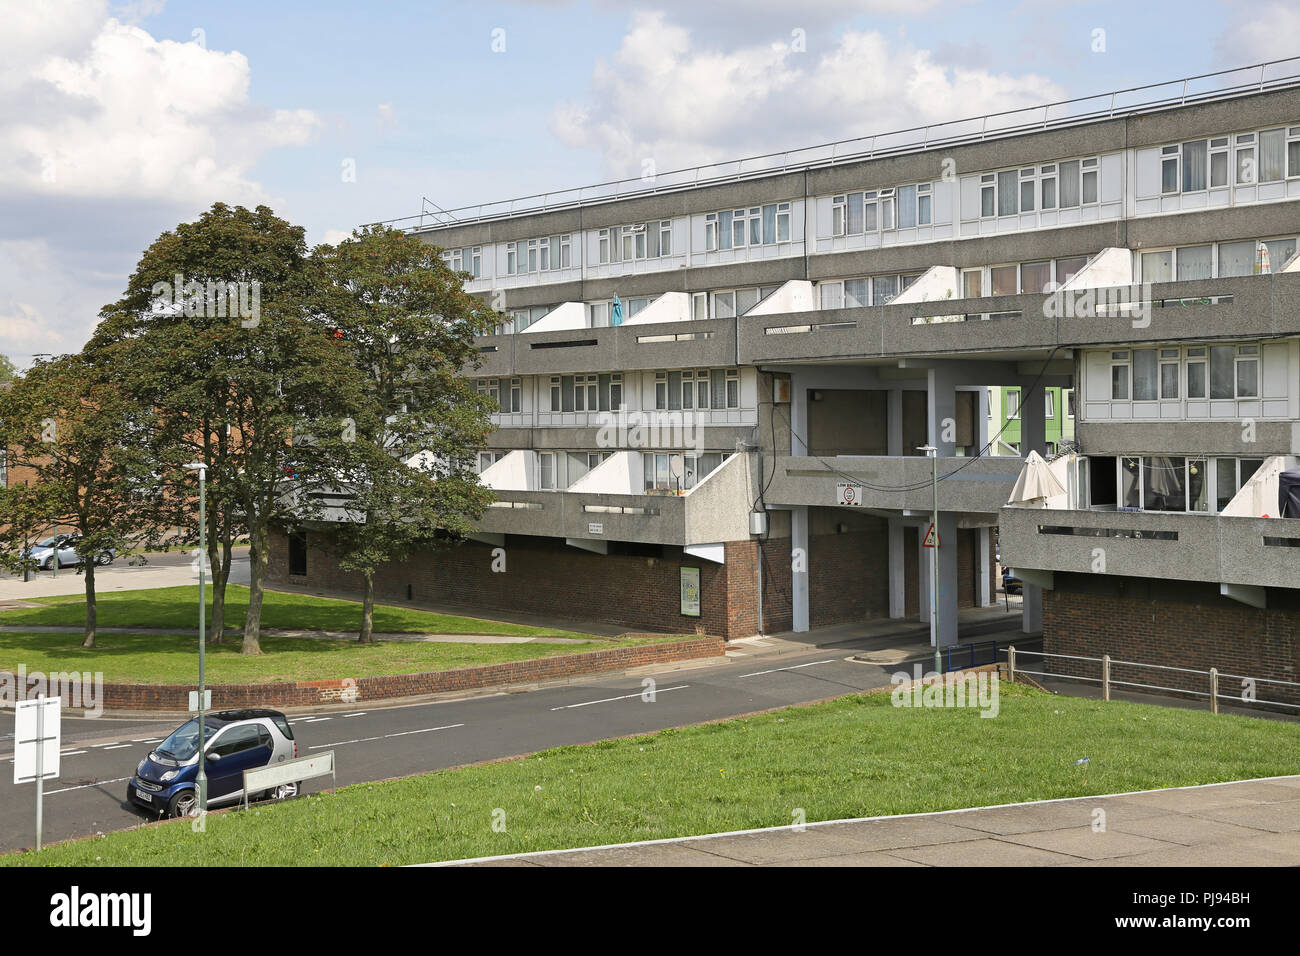 Low rise housing blocks at Thamesmead, southeast London, the famous 1960s social housing project developed by the Greater London Council - Stock Image